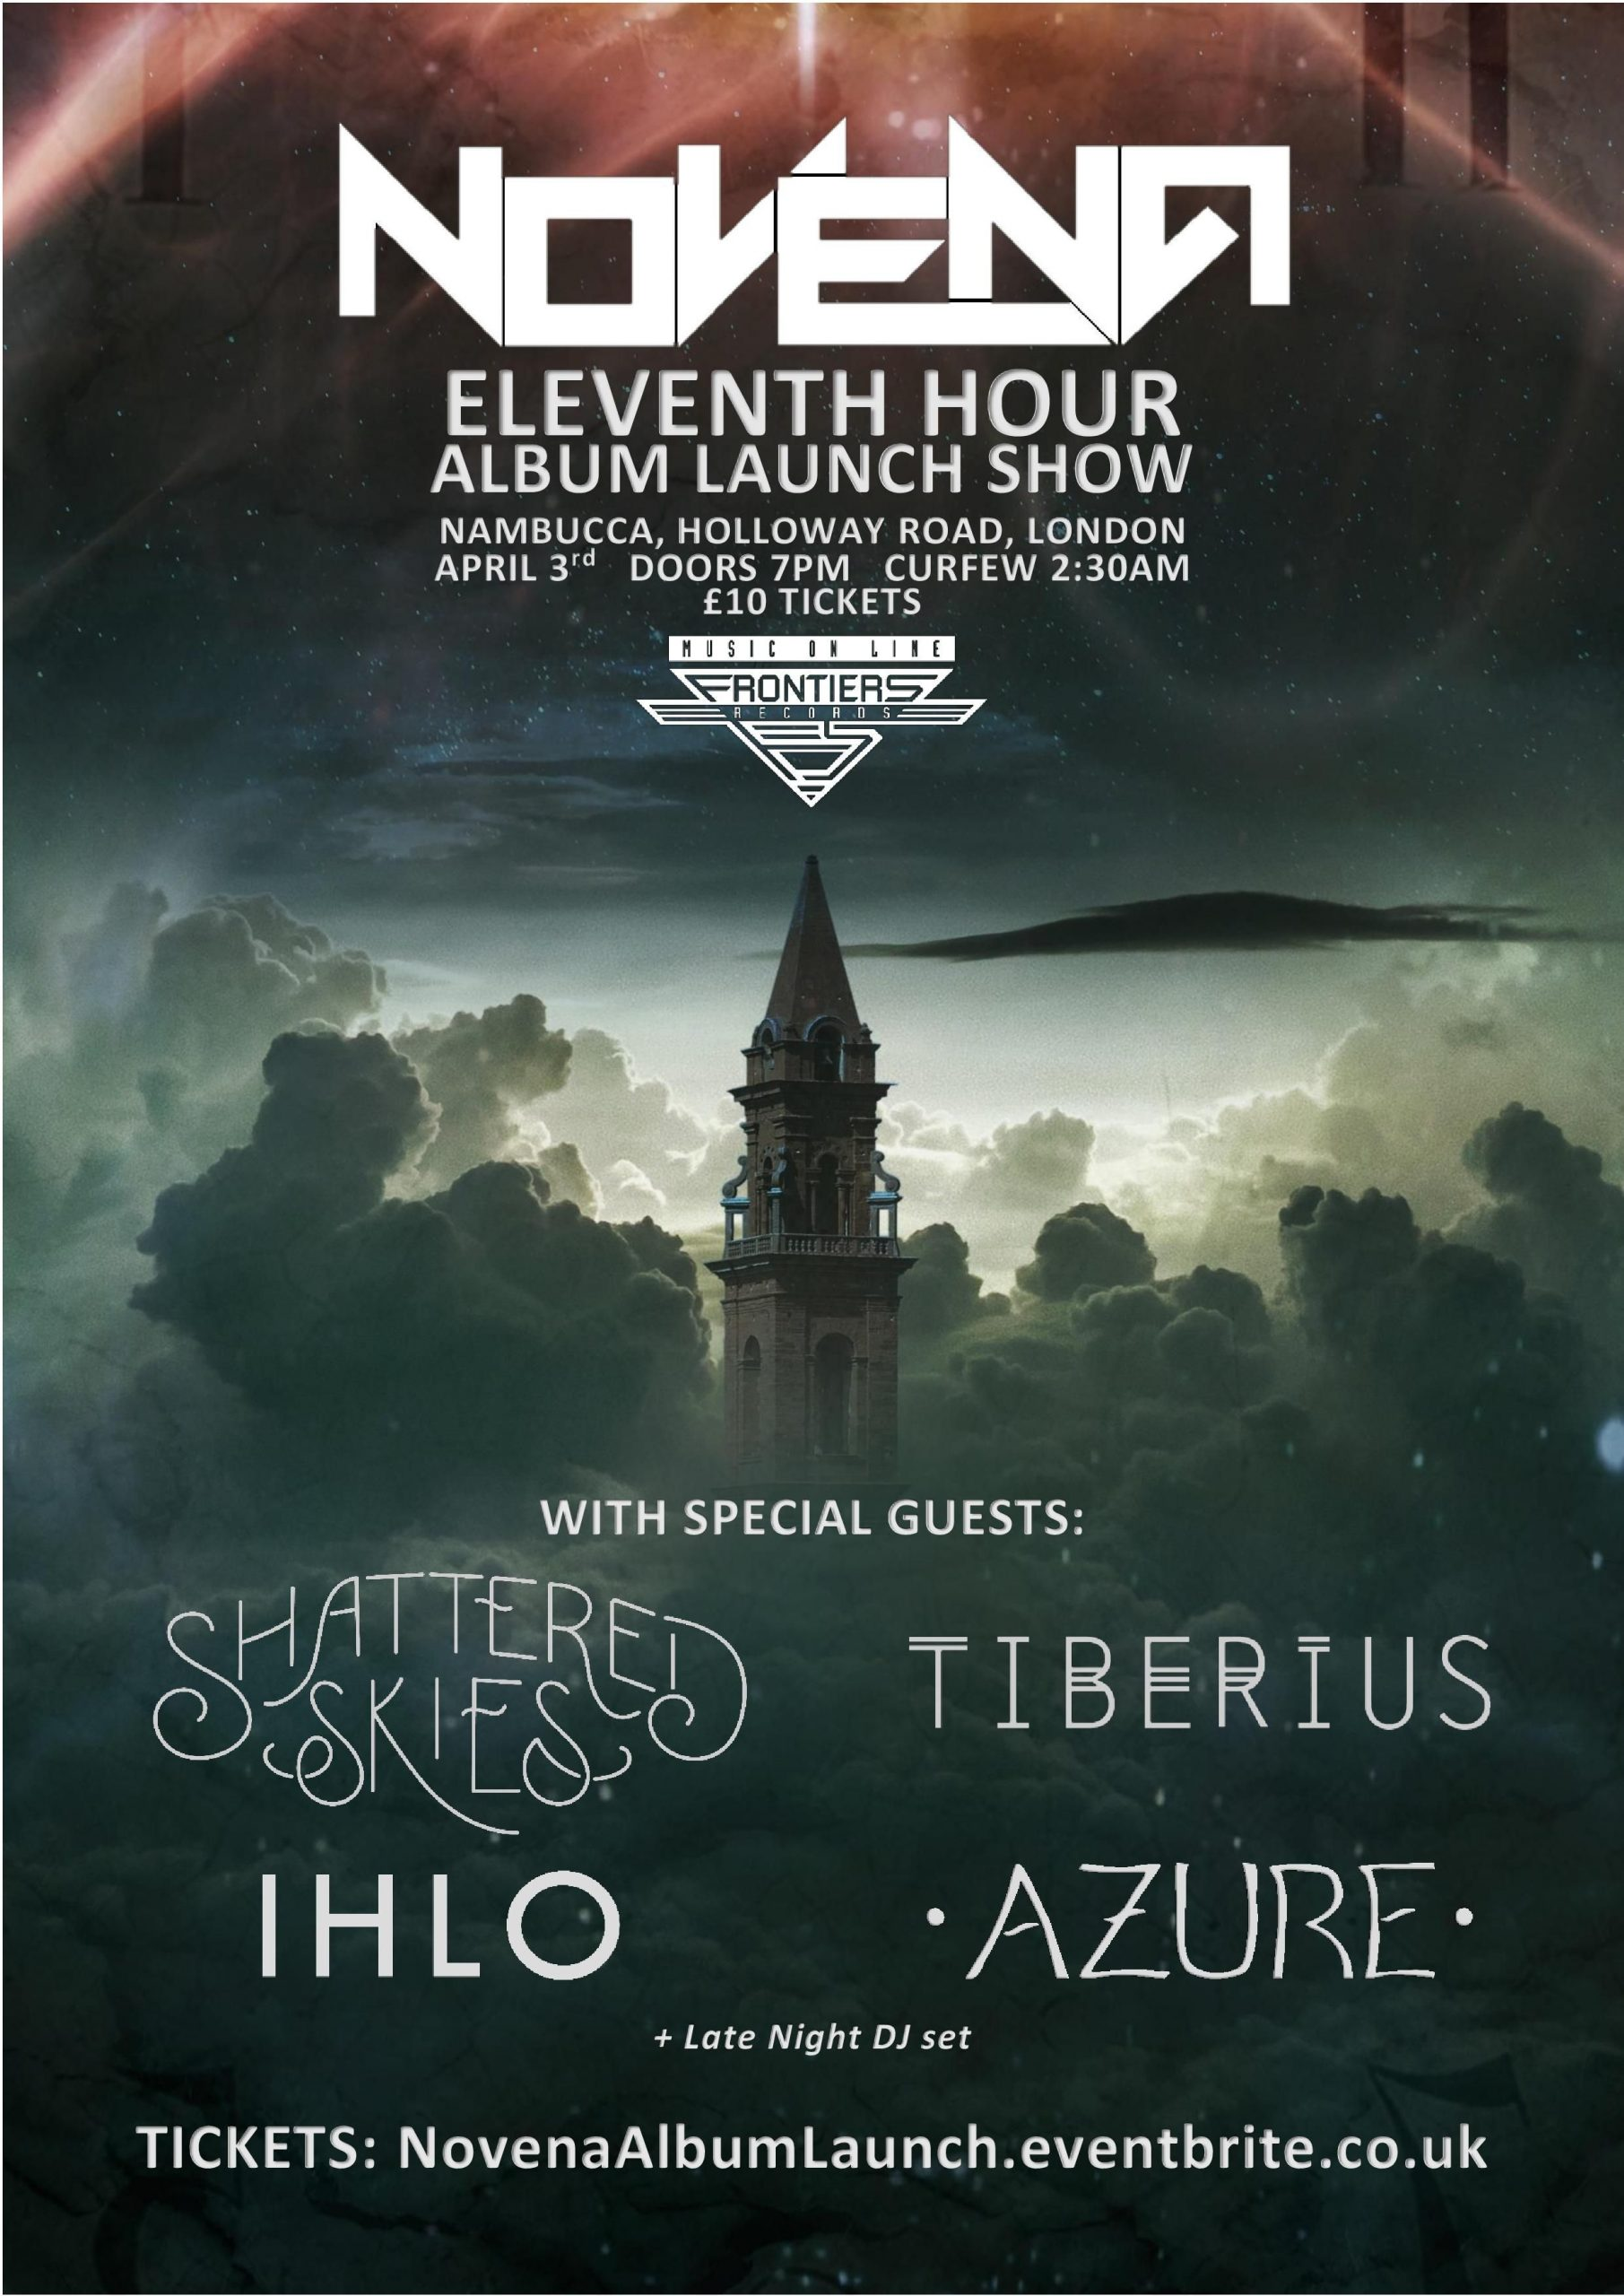 Eleventh Hour Album Launch Show. Nambucca, Holloway Road, London on April 3rd